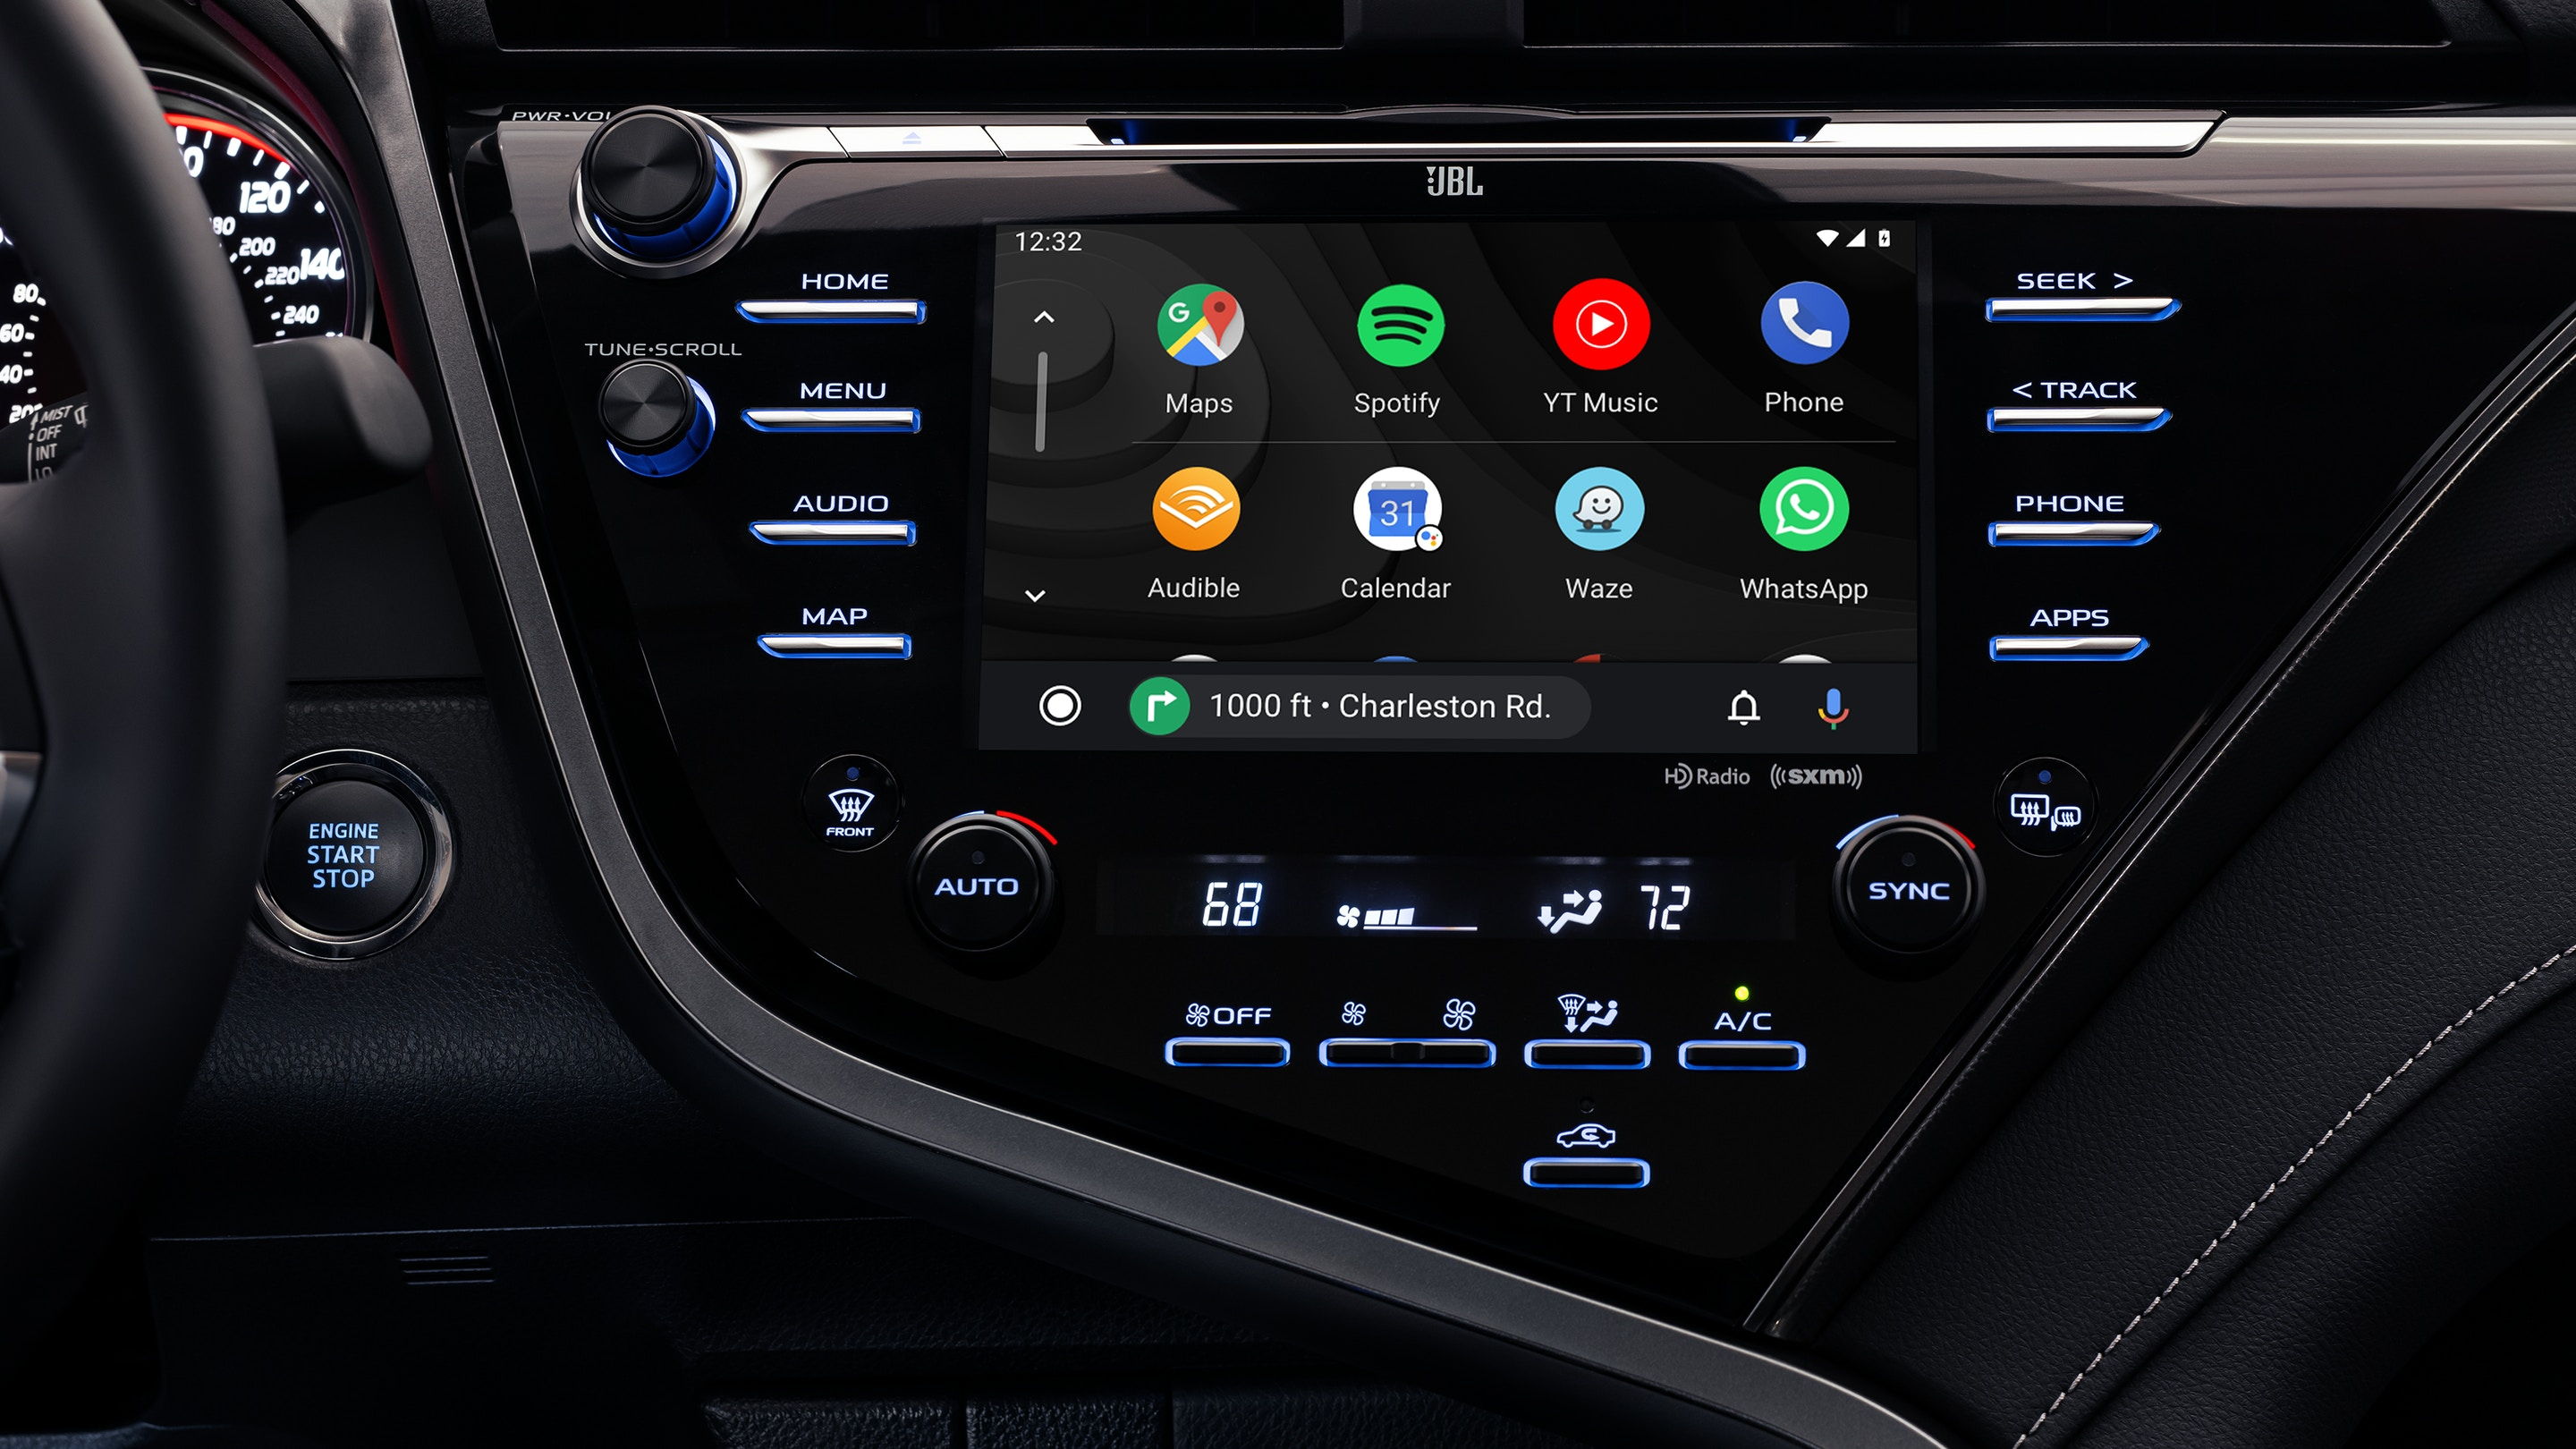 Infotainment in the 2020 Toyota Camry